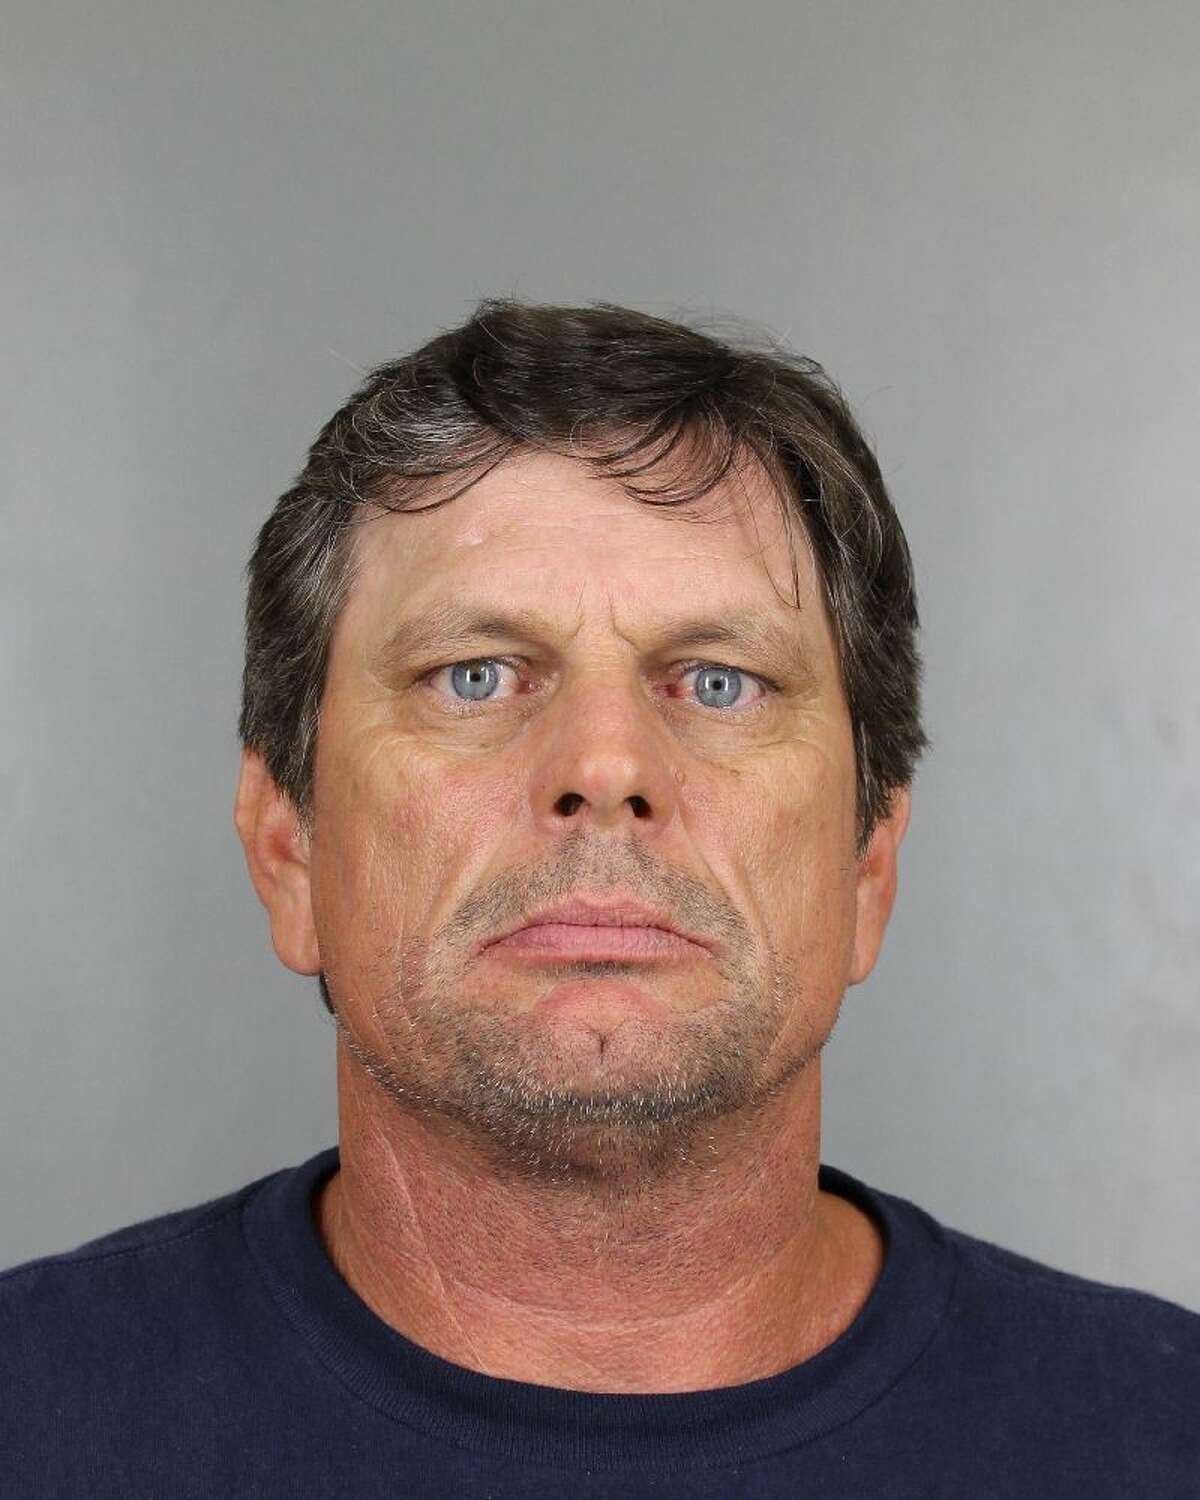 Barton Garrett Williams is accused of being part of a criminal enterprise that shrouded itself in Colorado's marijuana laws to smuggle bulk quantities of high quality pot to Texas. Several members of the ring have direct ties to Houston.